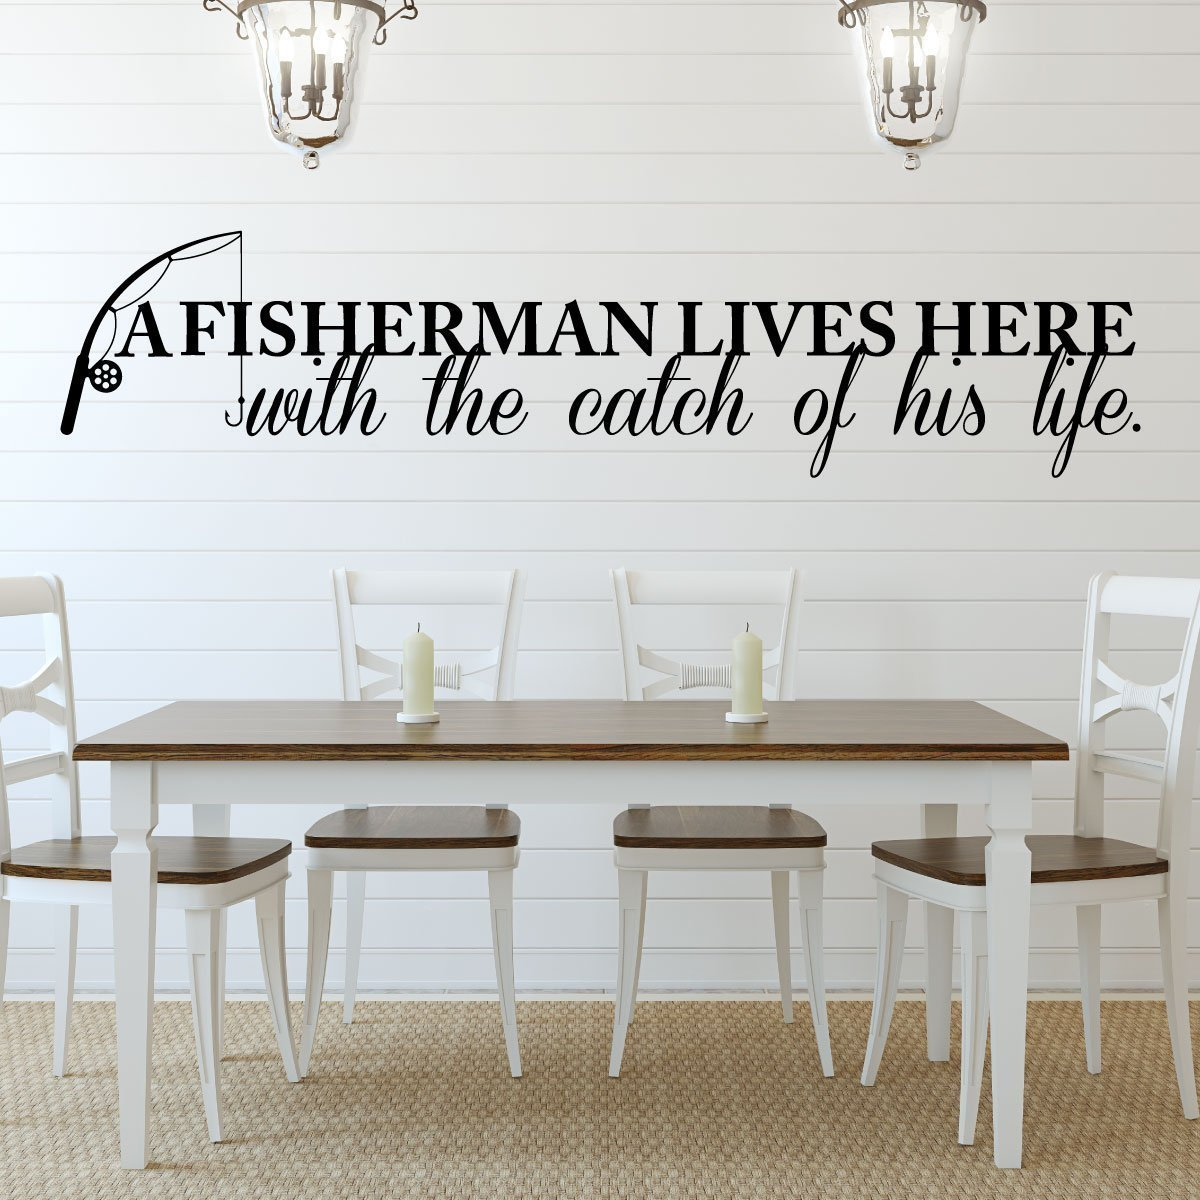 Fisherman Gift Decal - Vinyl Wall Decor - A Fisherman Lives Here With The Catch of His Life